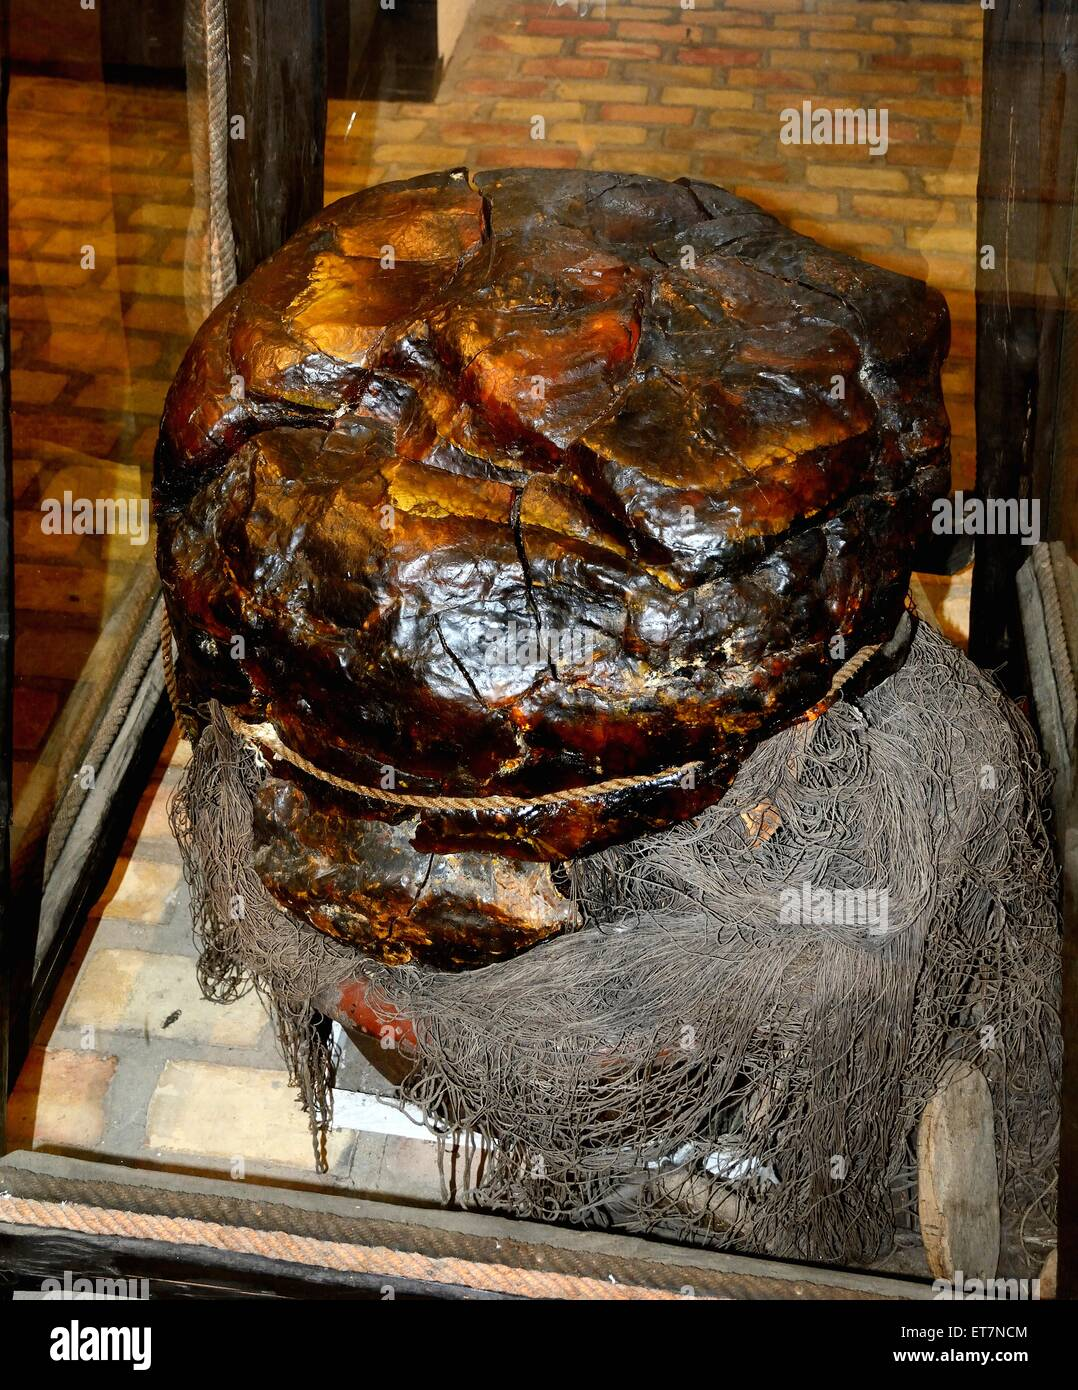 Big amber stone, weight 236 kilo, found in the south Baltic Sea, Bärnstensmuséet, Amber Museum, Kämpinge, - Stock Image